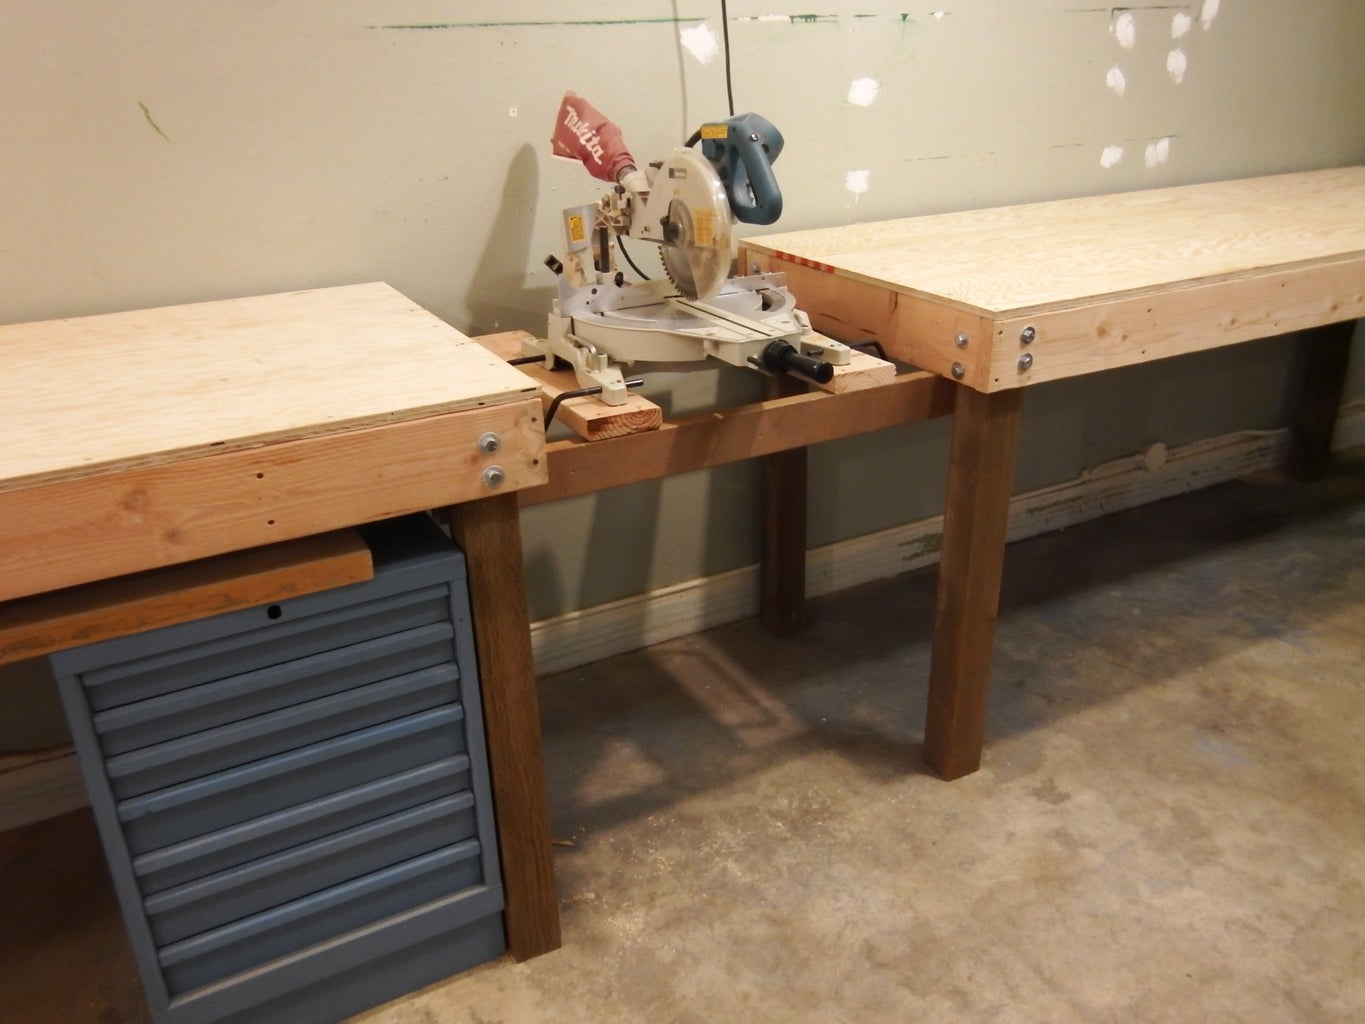 Combine Tables With Saw in the Middle